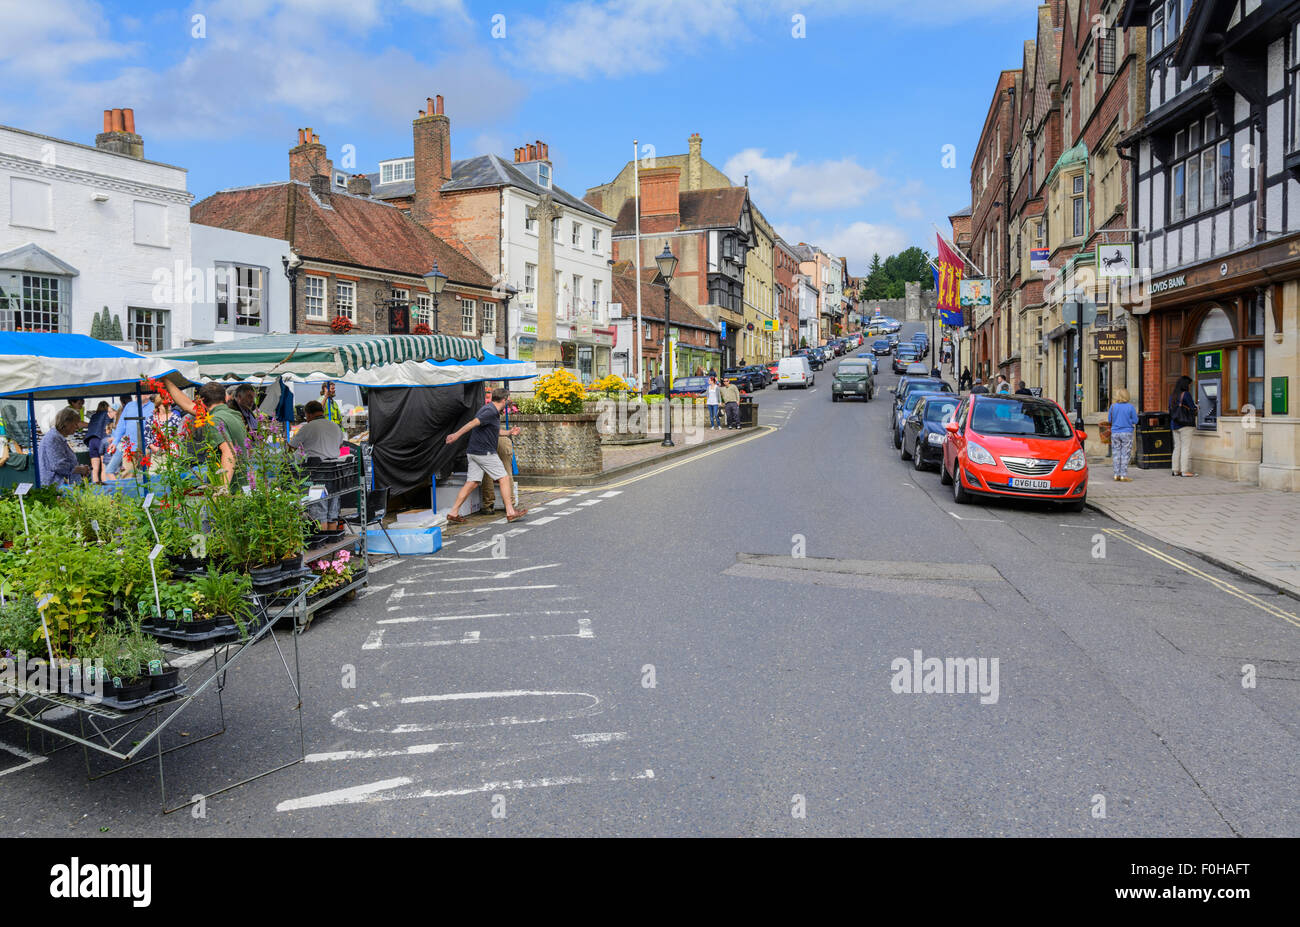 Arundel High Street. Looking up the High Street in the small Medieval town of Arundel in West Sussex, England, UK. - Stock Image